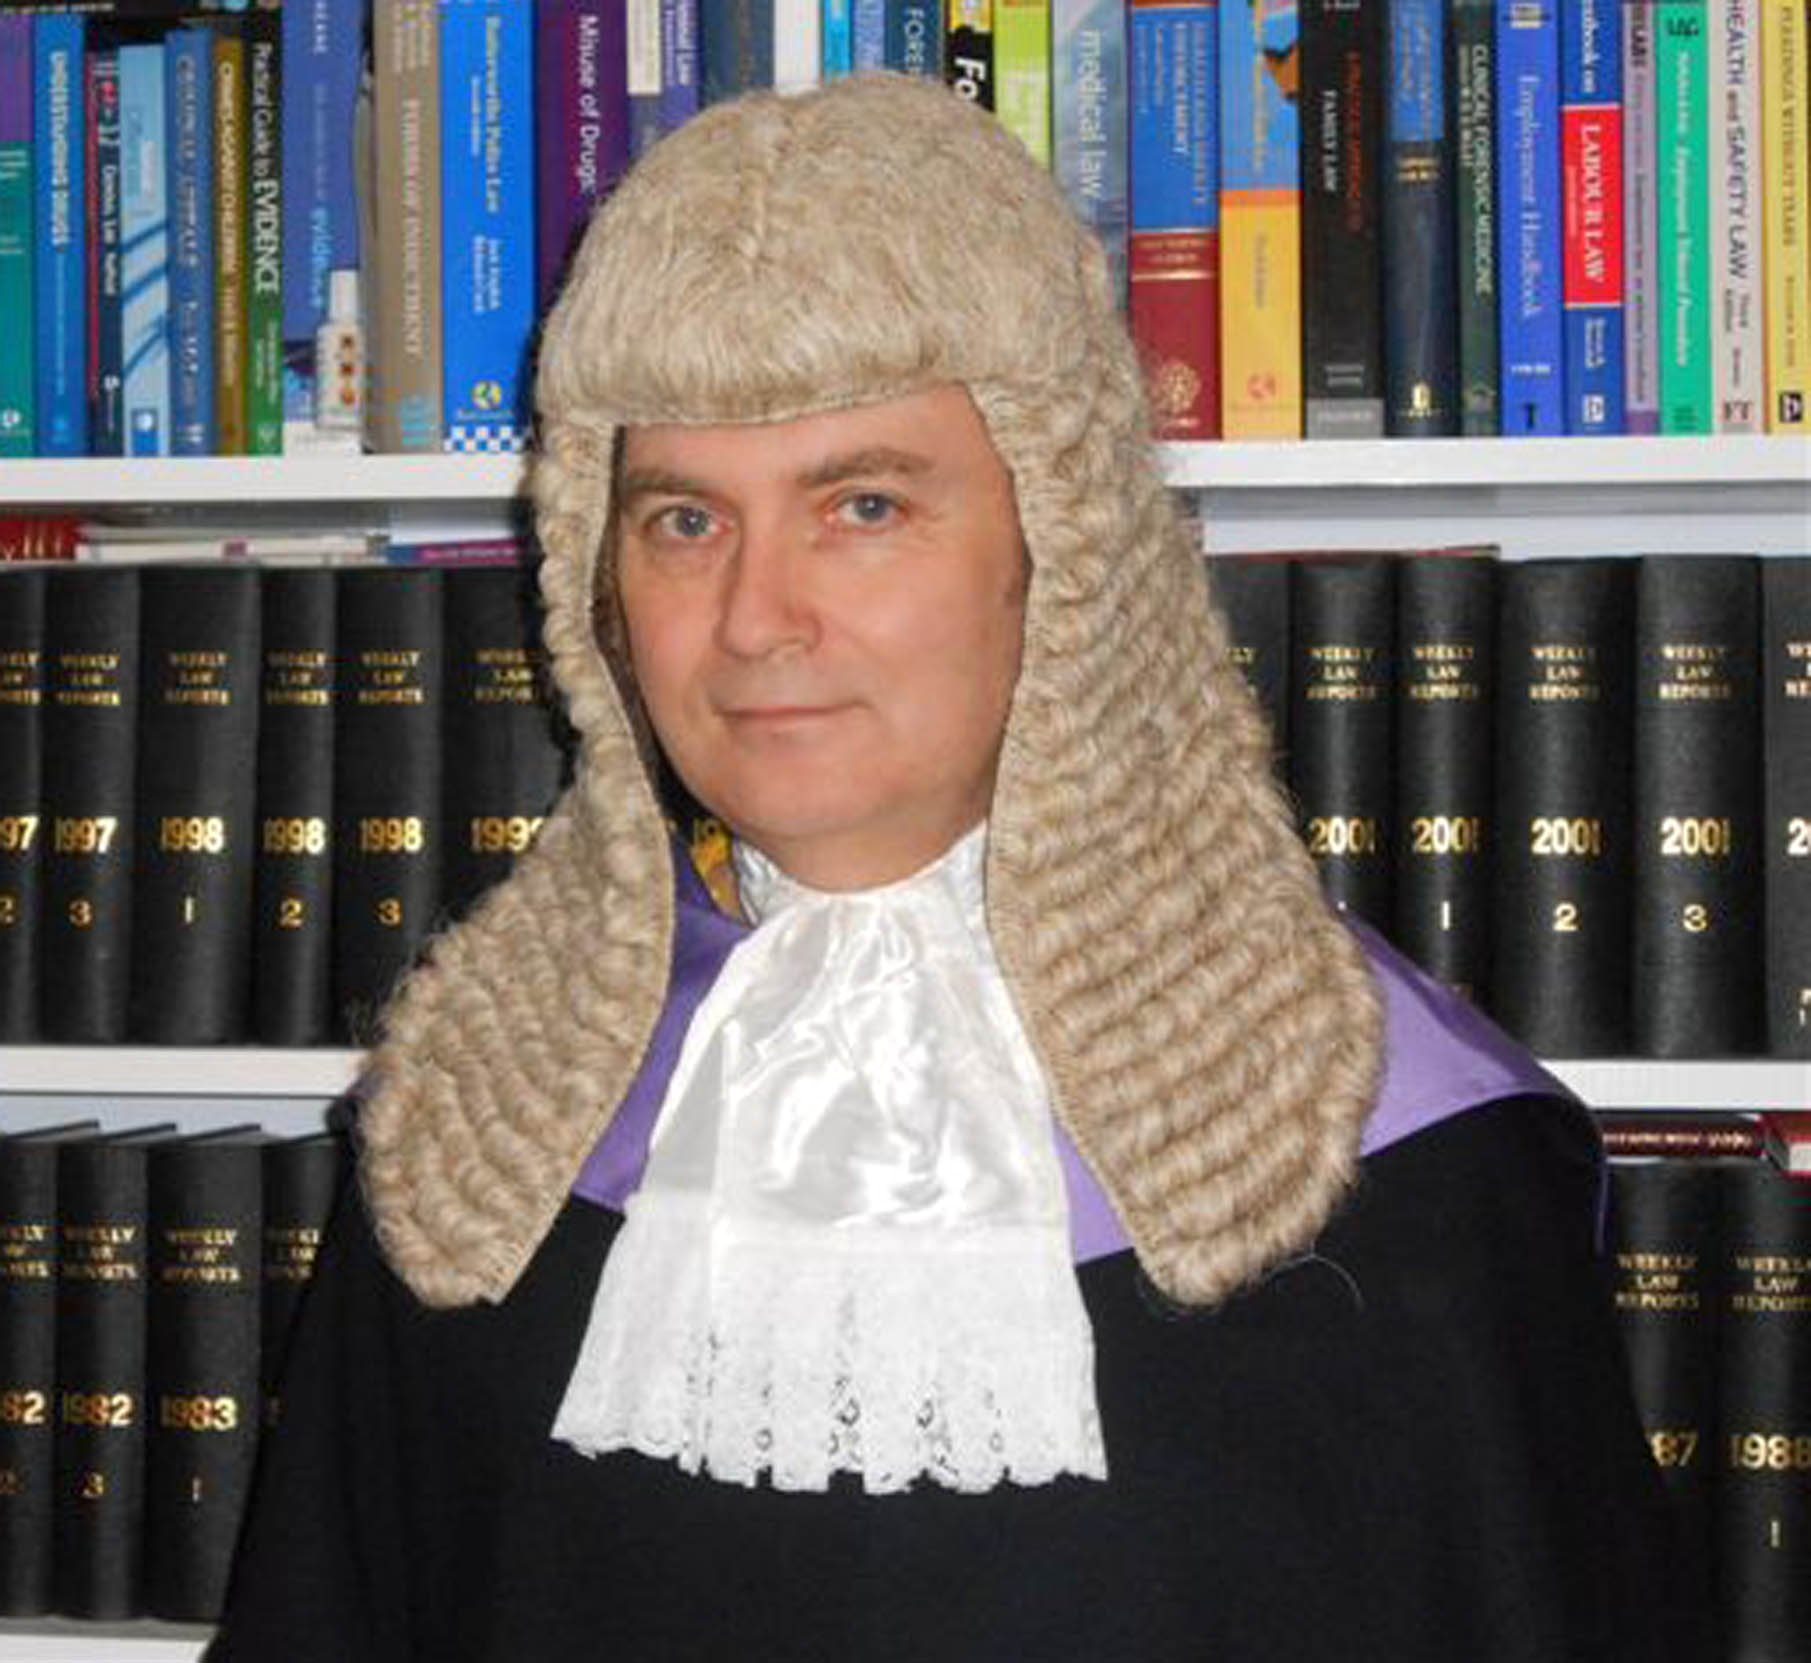 Judge Rhys Rowlands - critical of delay in case being brought to court